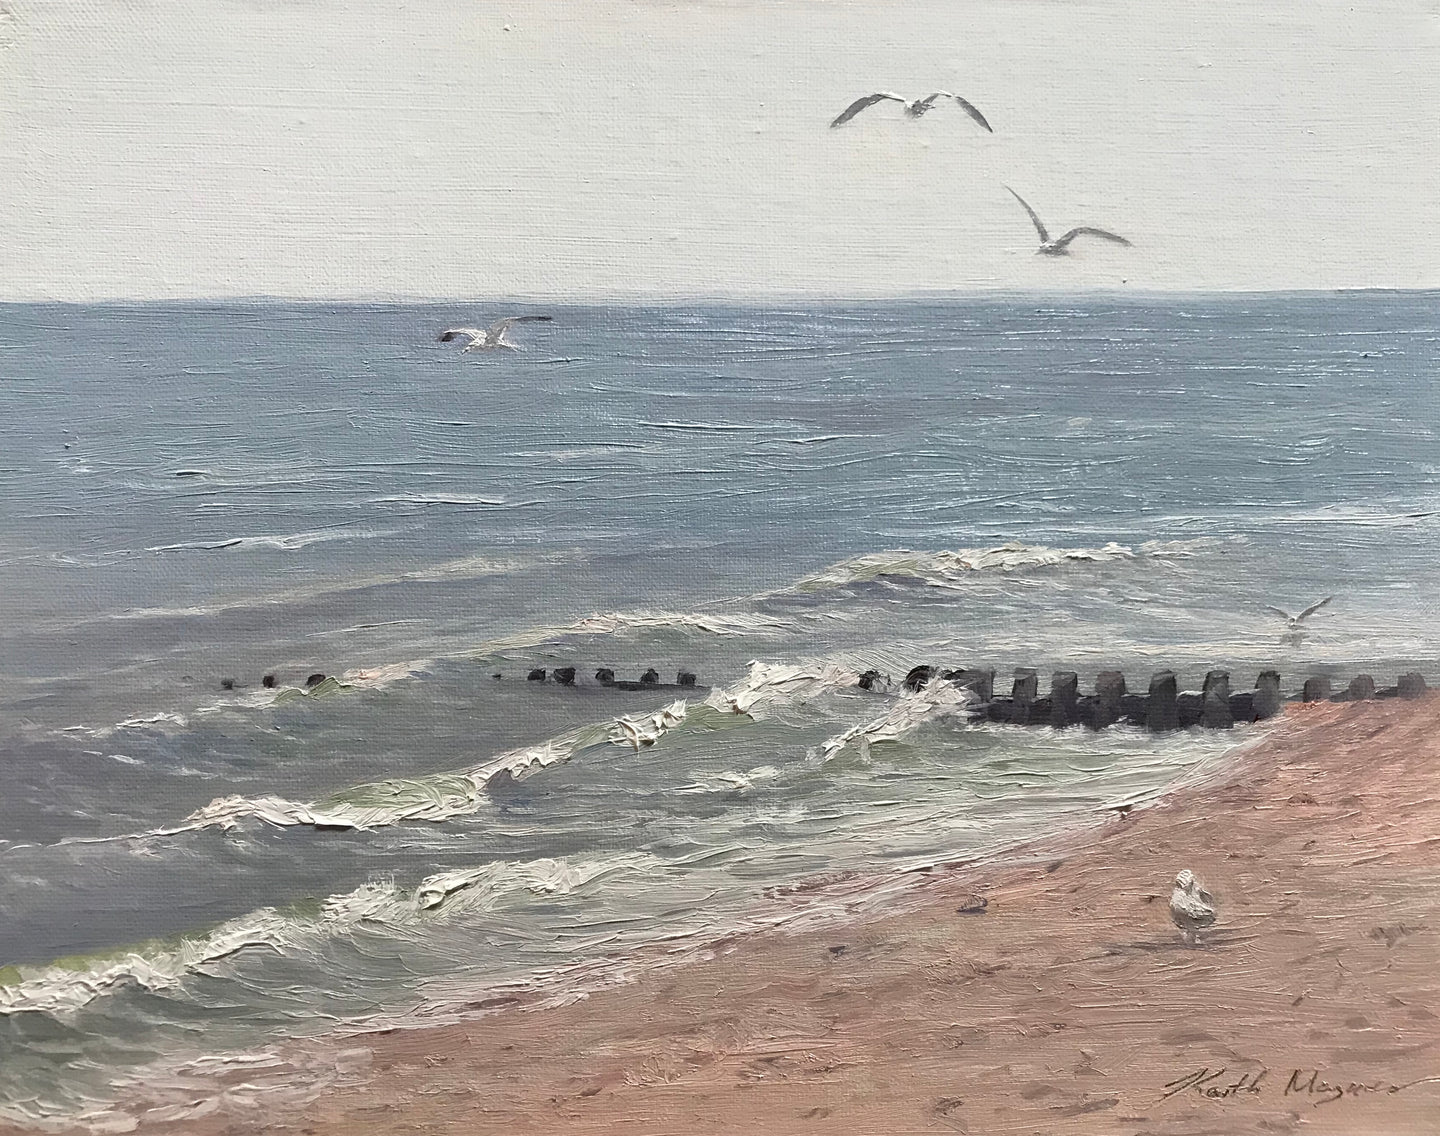 This original plein air oil painting was painted onsite at Compo Beach in Westport, CT.  It is painted on archival quality canvas covered panel with professional oil pigments.  The painting itself measures 8X10